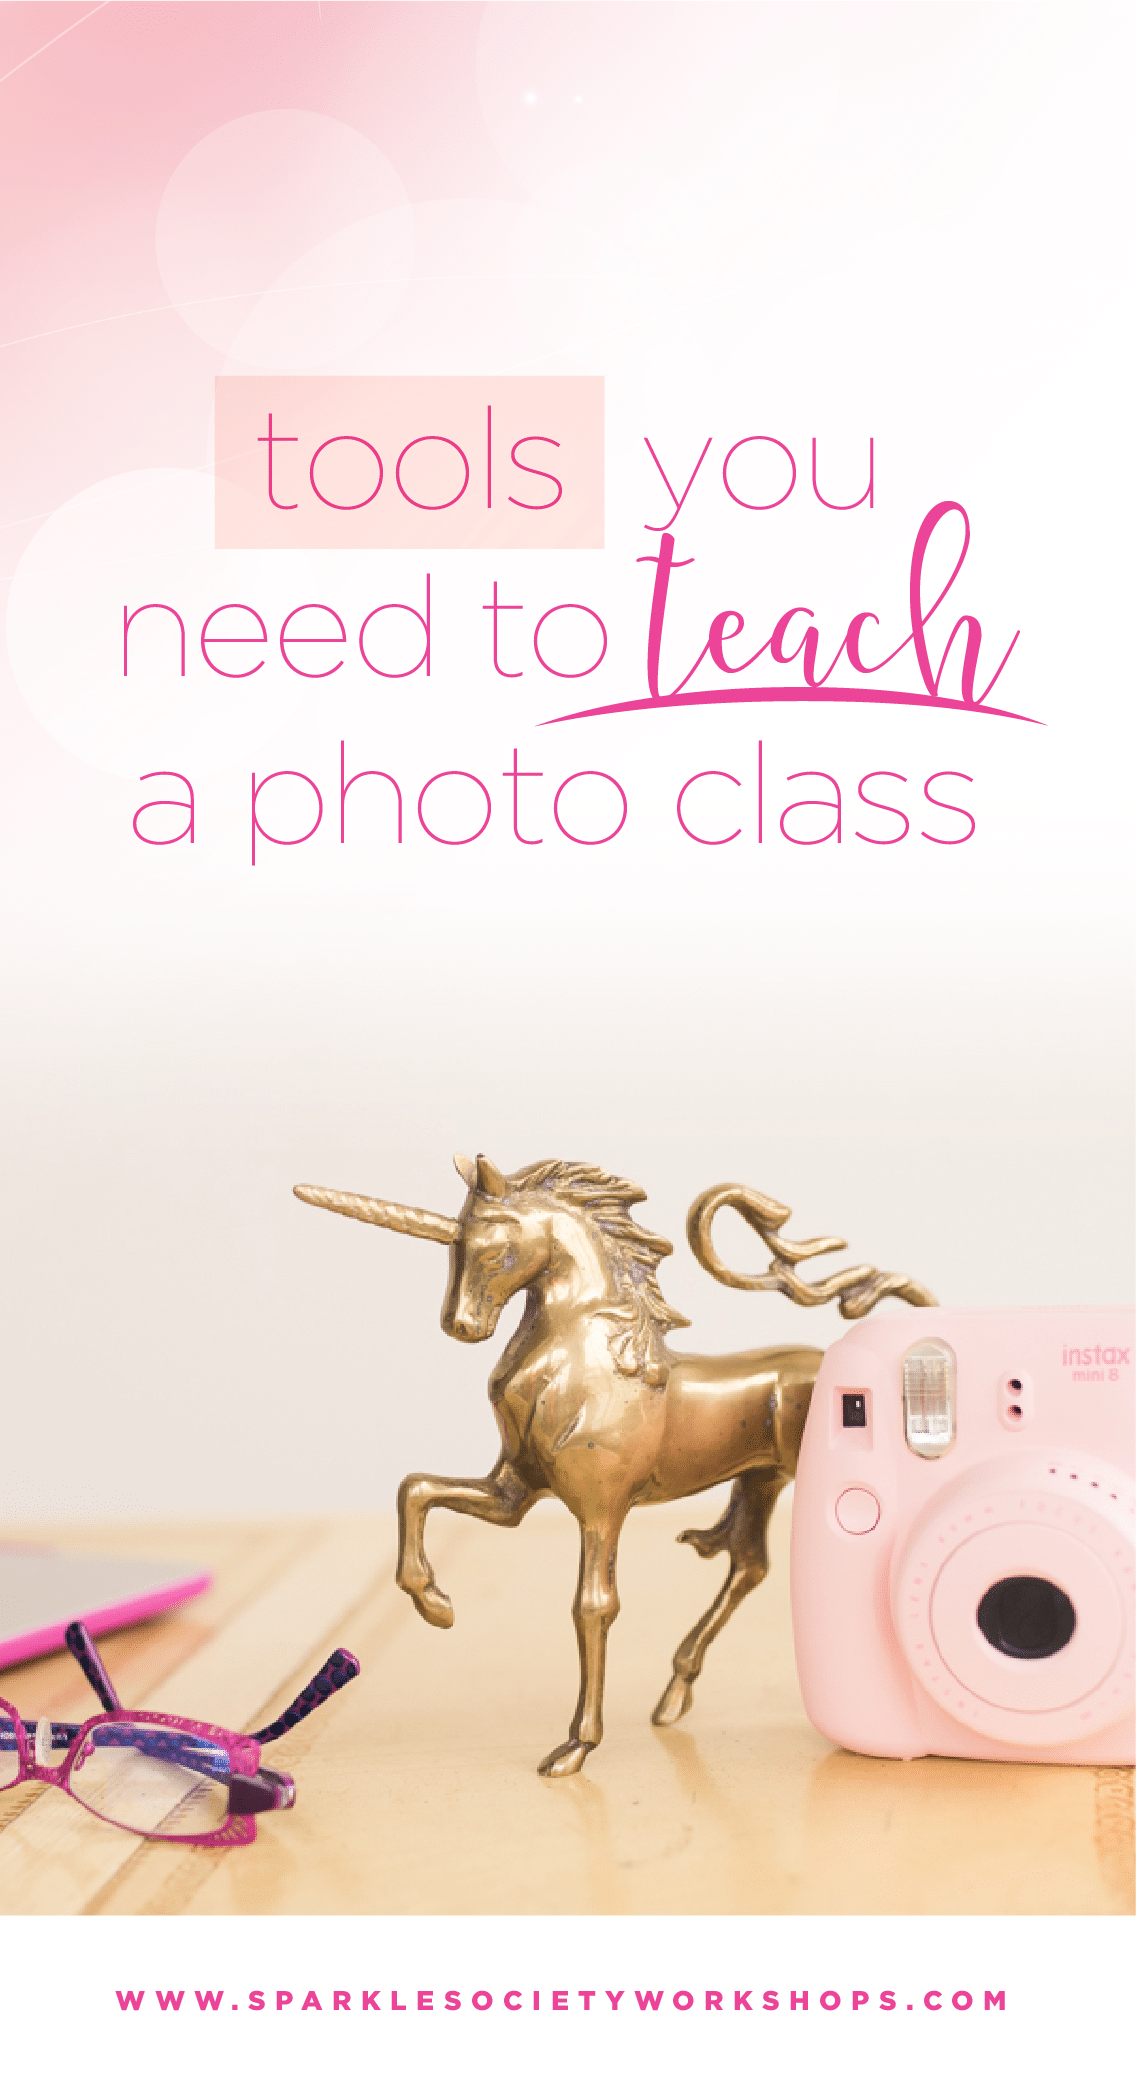 What tools do you need to teach a photography workshop?  Create a memorable experience for your students when you teach a photography class!  Make sure you have these four tools ready before class begins!  #sparklesocietyworkshops #sparklesociety #sparkleblog @sparklesocietyworkshops